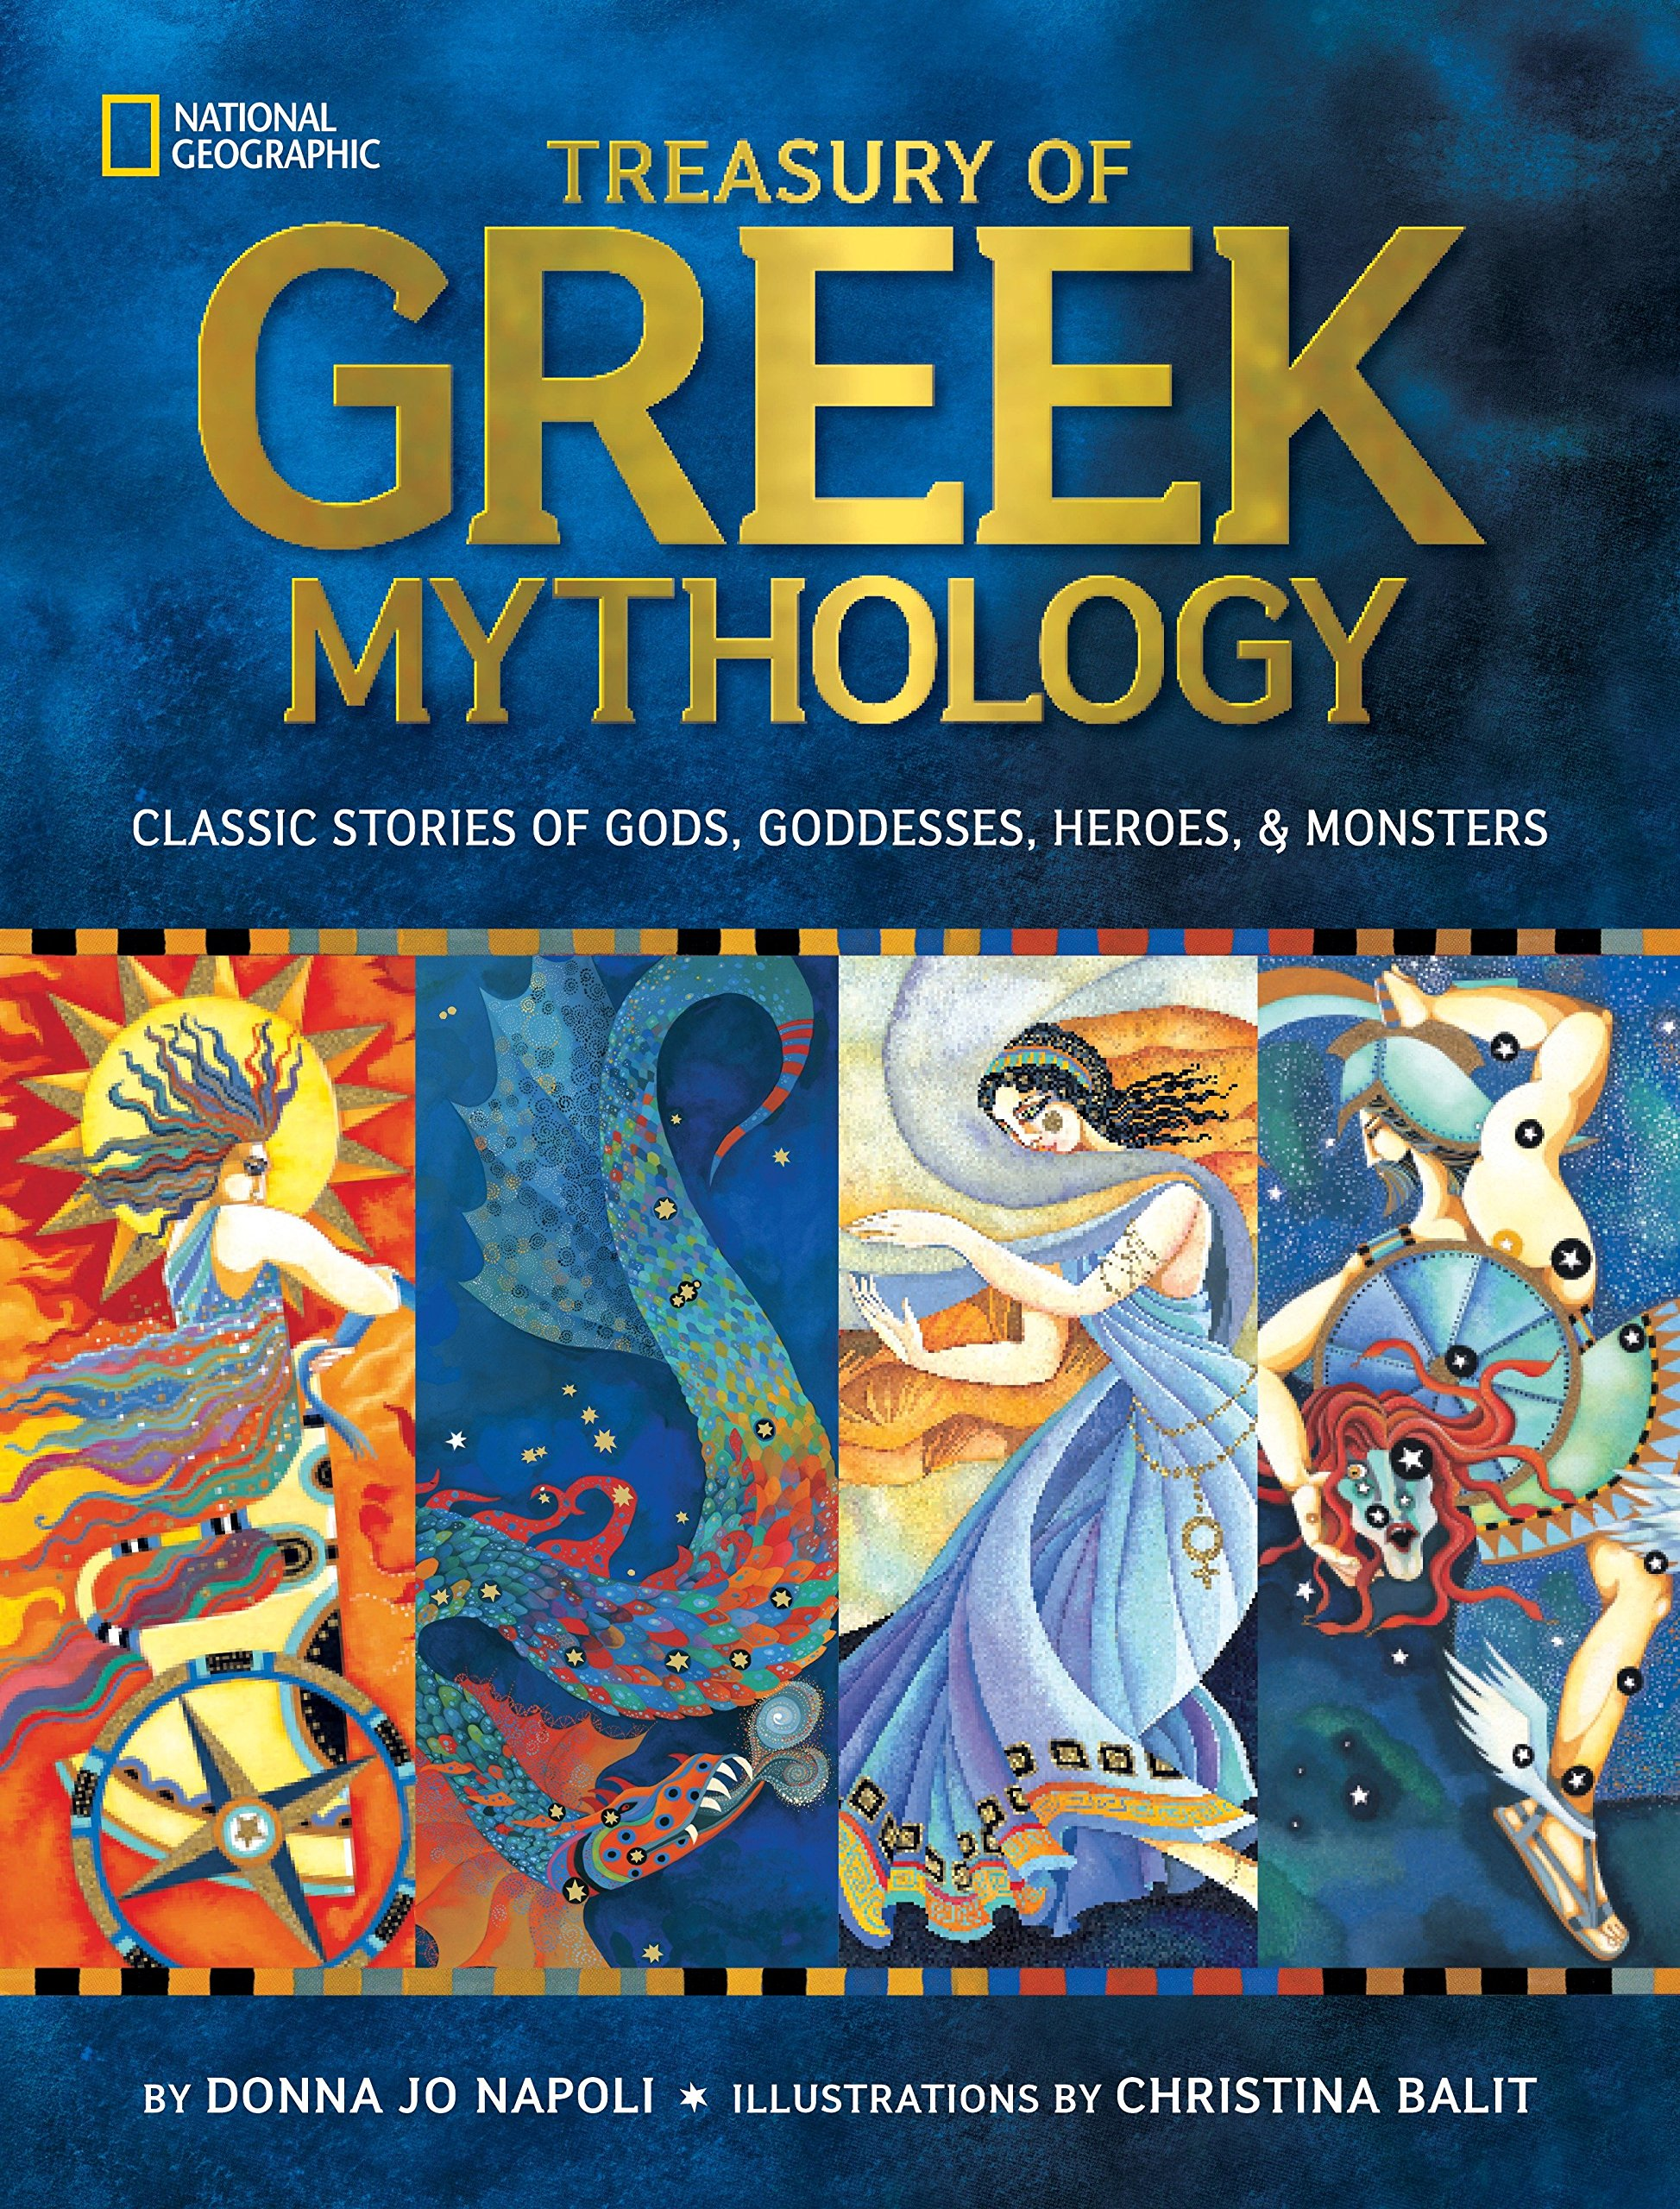 Treasury of Greek Mythology: Classic Stories of Gods, Goddesses, Heroes & Monsters: Napoli, Donna Jo, Balit, Christina: 0884969025324: Amazon.com: Books